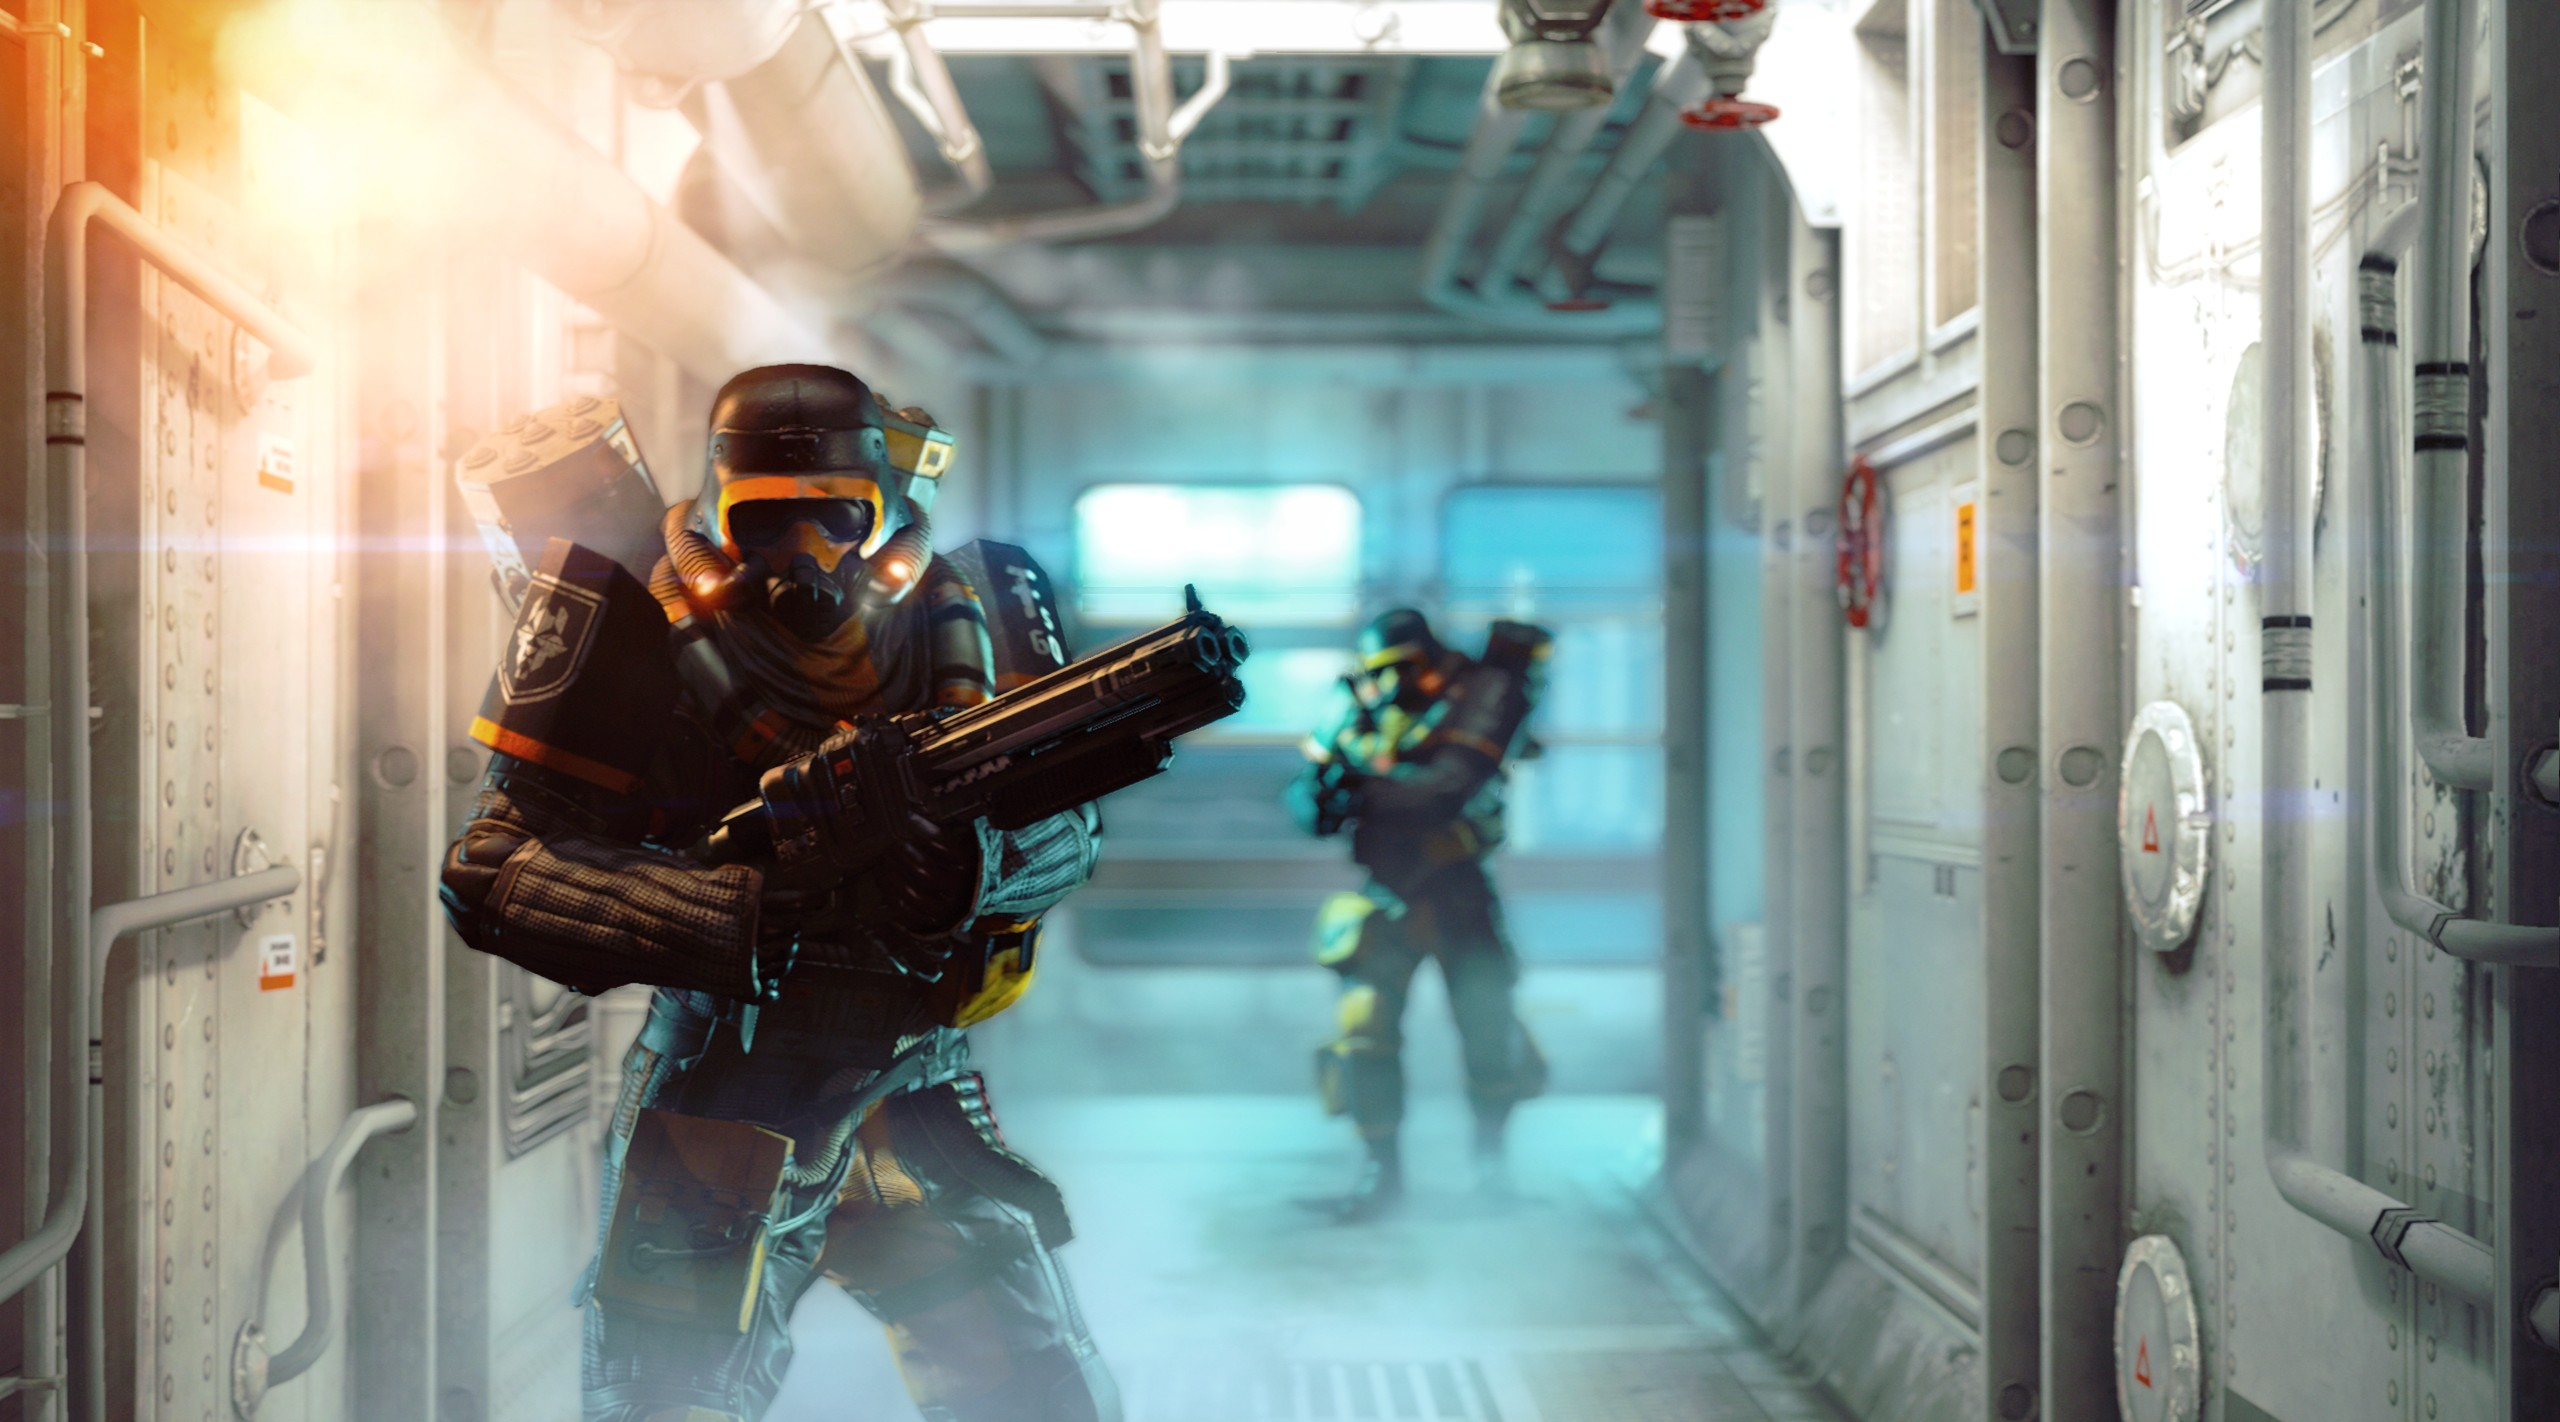 Wolfenstein: The New Order – the last good single-player FPS?